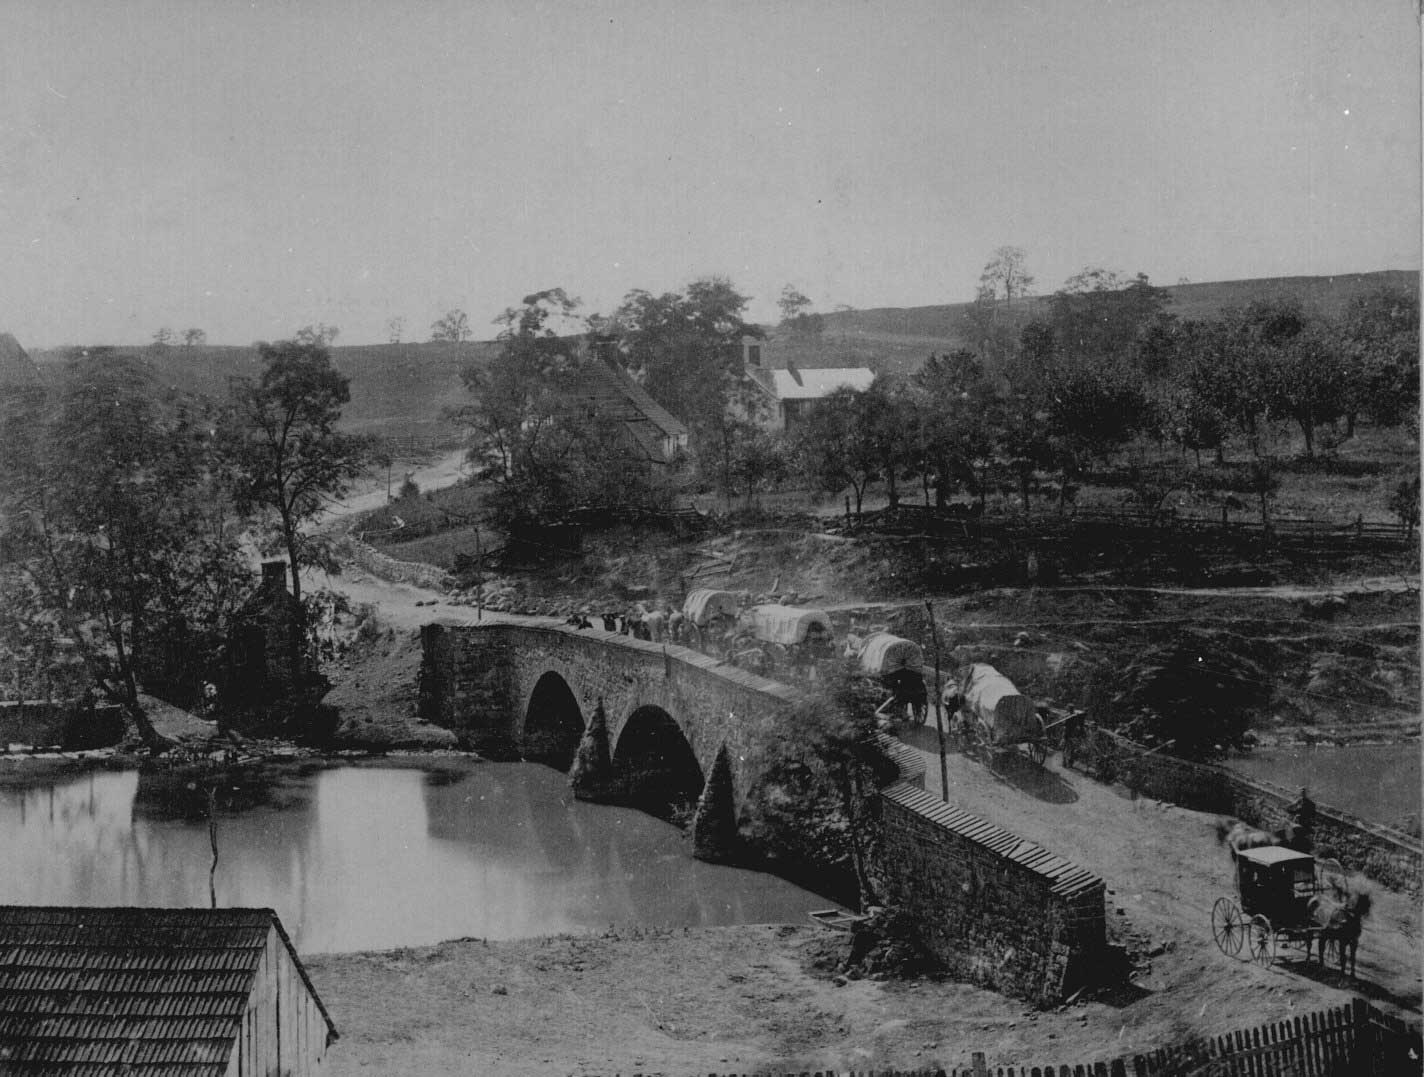 antietam-bridge-maryland-september-1862-soldiers-and-wagons-are-crossing-the-bridge-gardner